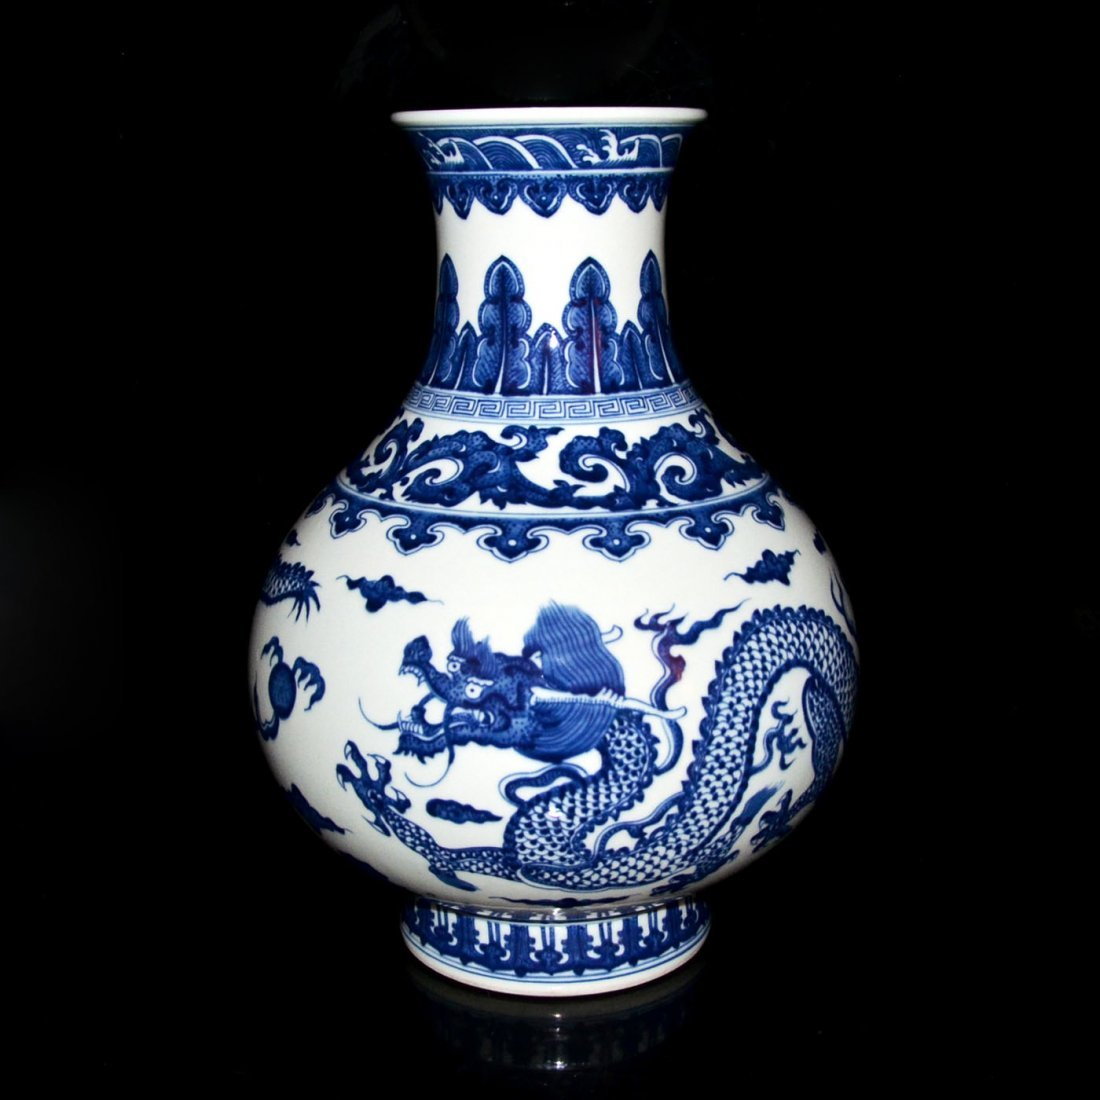 Qing, A Large Ming-Style Blue and White Flaming Dragon